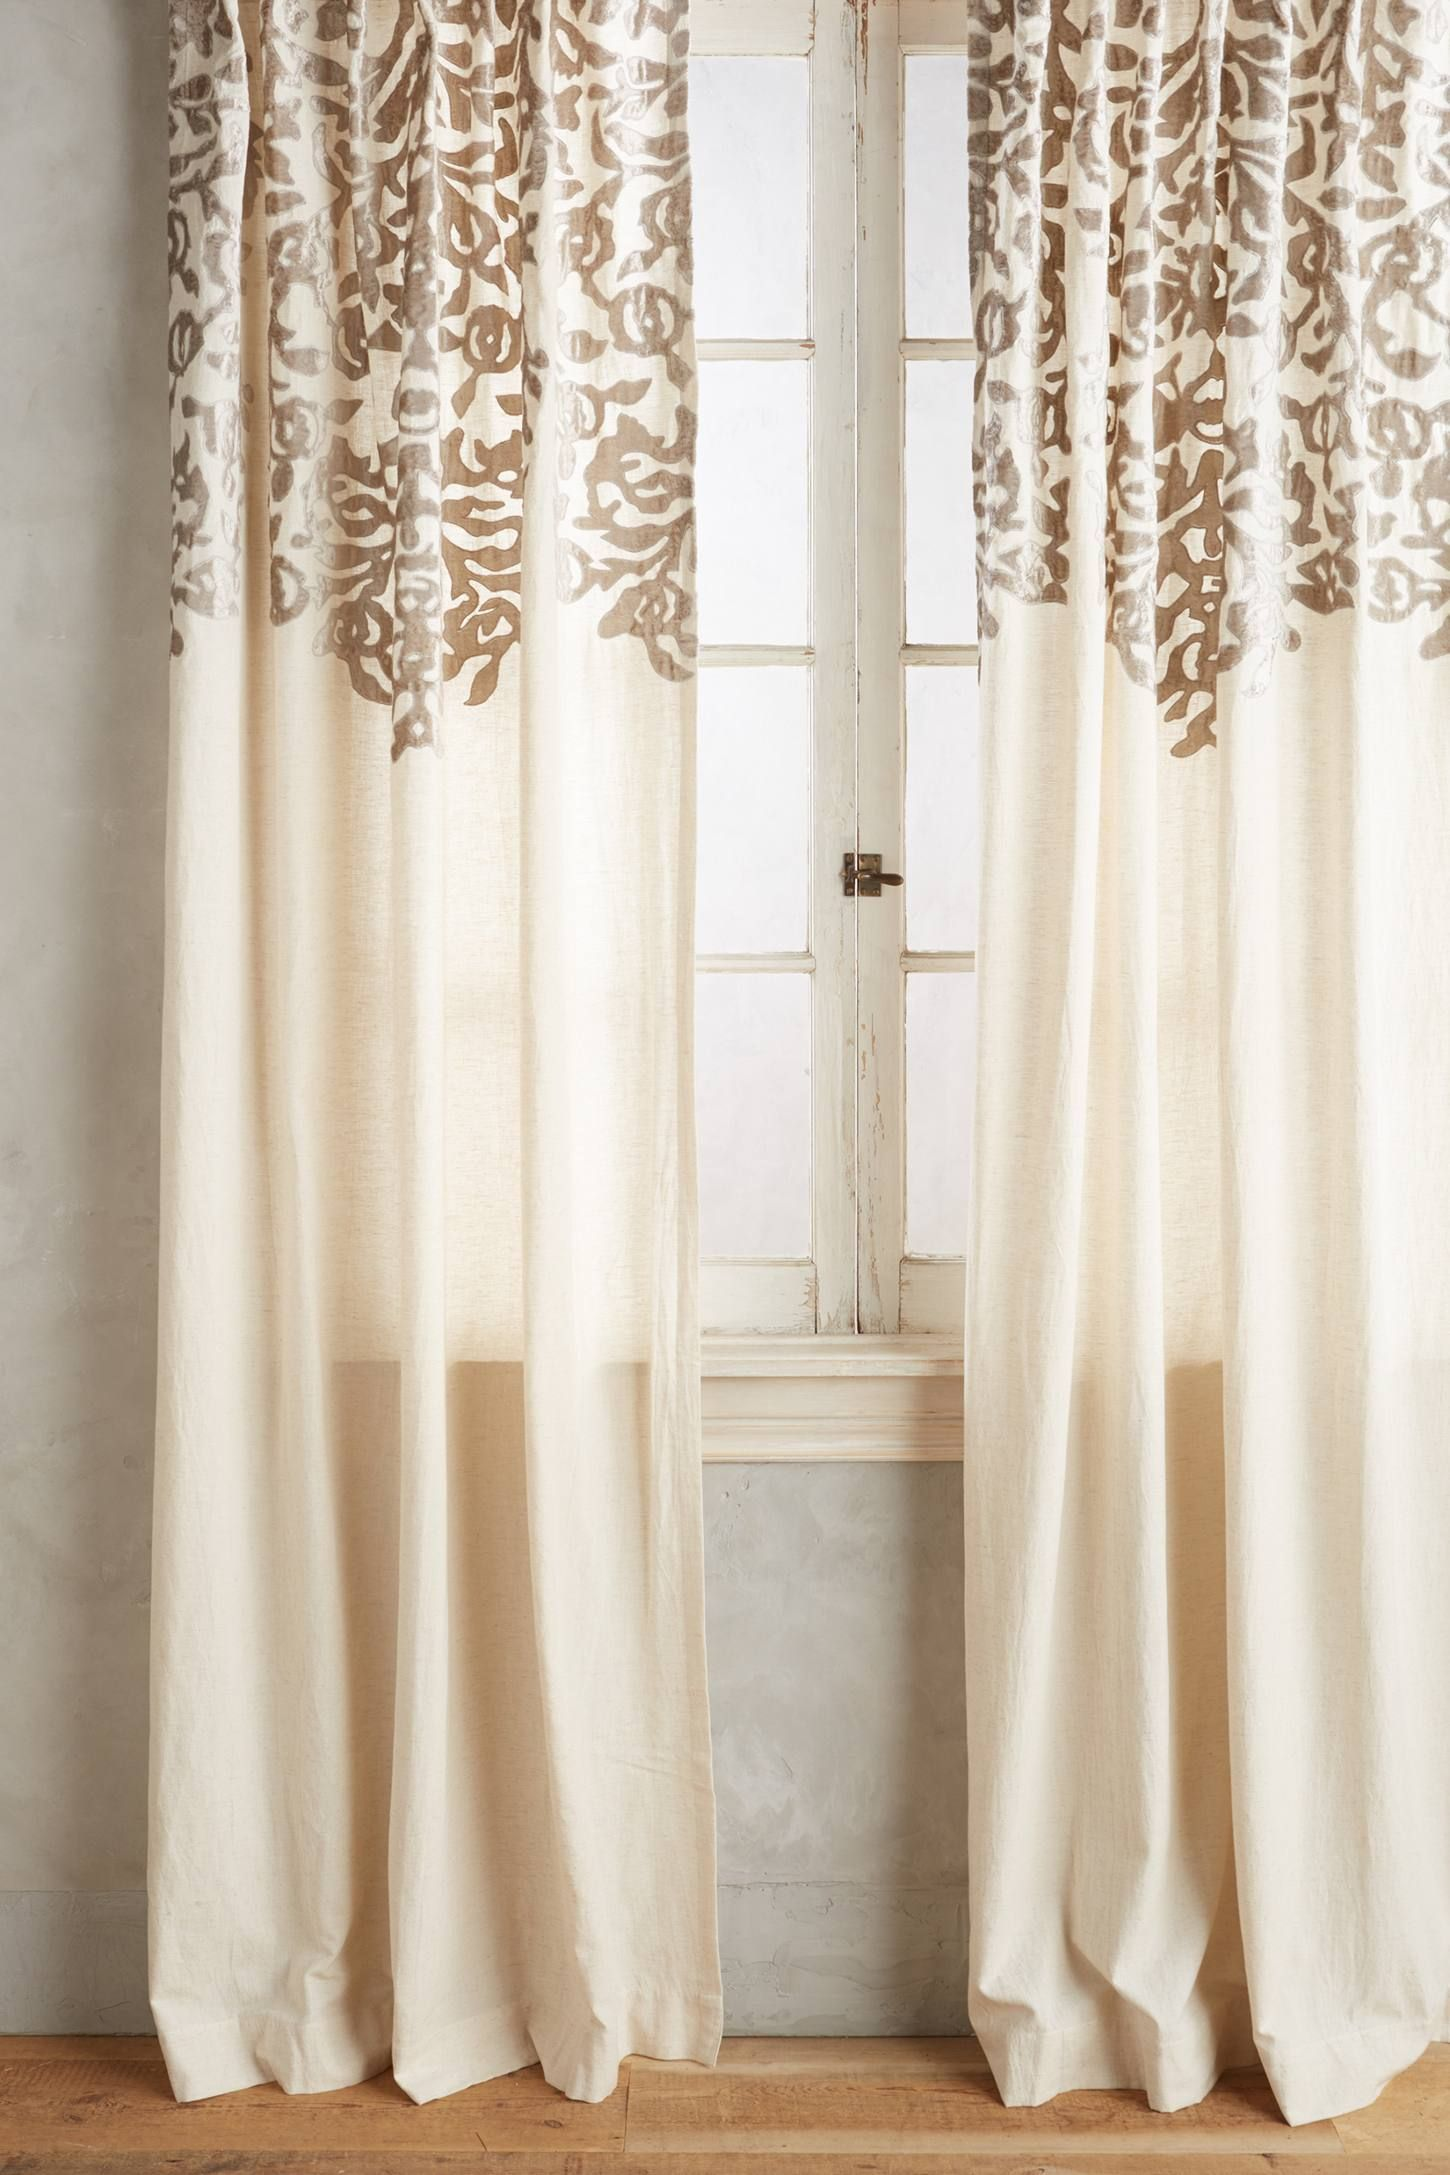 Smithery Curtain Rod   Bedrooms, Room and Living rooms